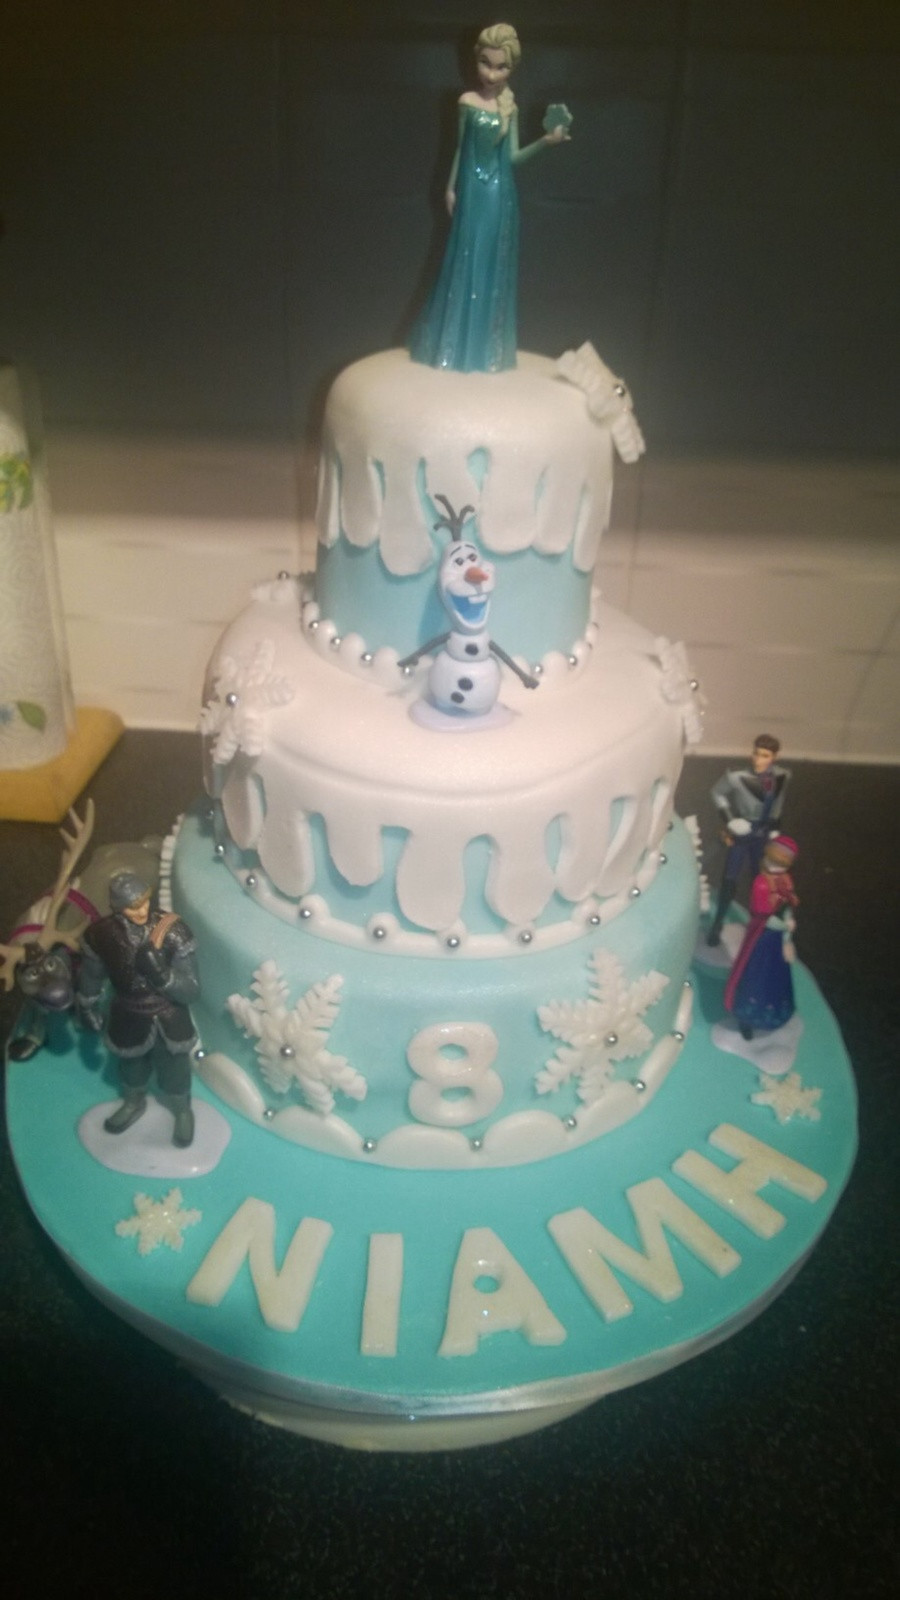 Best ideas about 3 Tier Birthday Cake . Save or Pin Disney Frozen 3 Tier Birthday Cake CakeCentral Now.